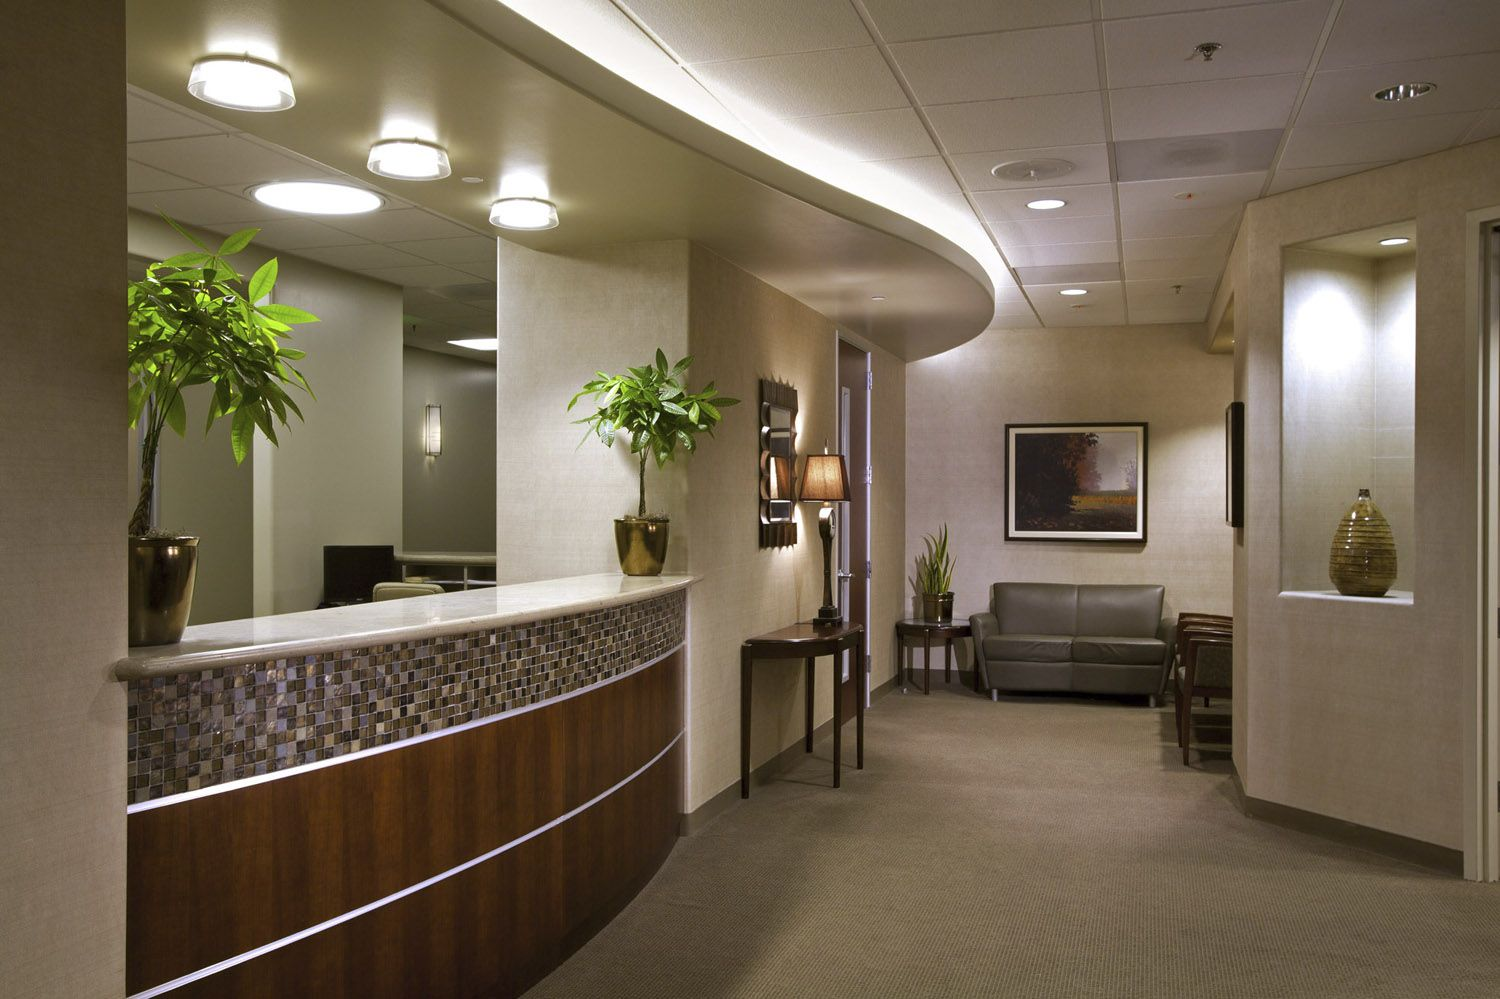 plastic surgery waiting area | mission ob-gyn & reproductive